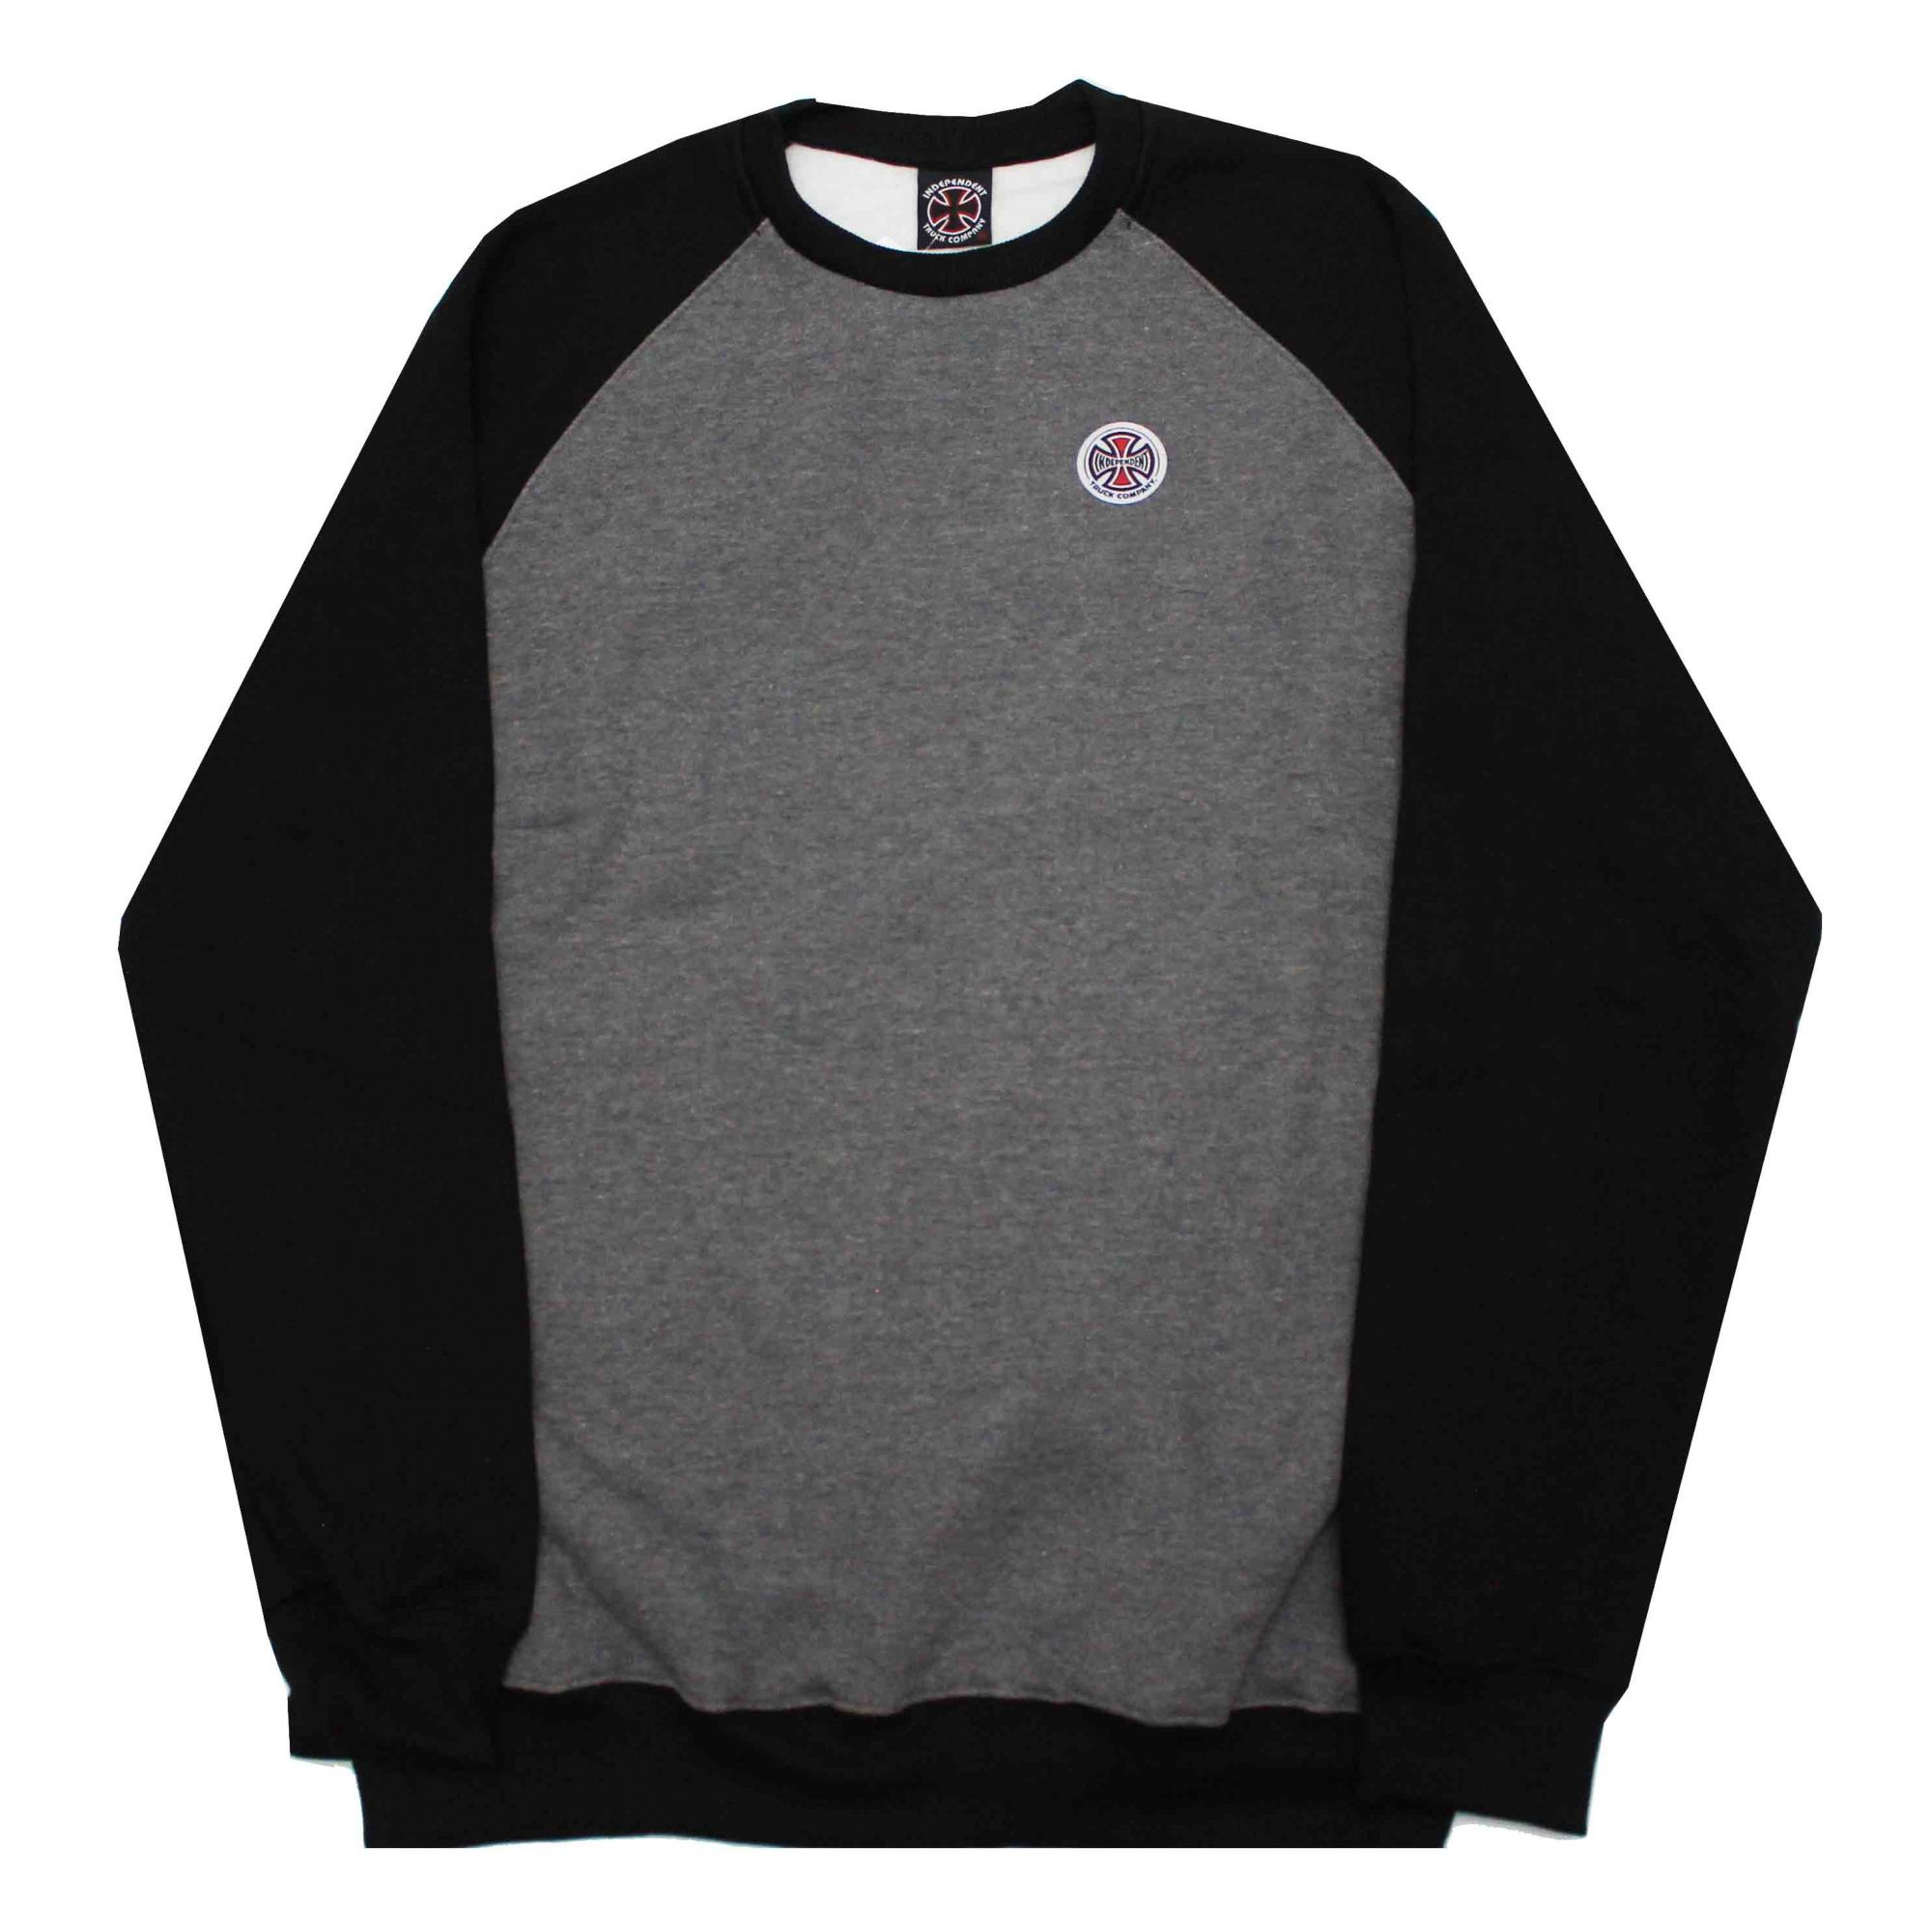 Moletom Independent Crewneck Raglan Truck co Bottom Cinza Chumbo/Preto